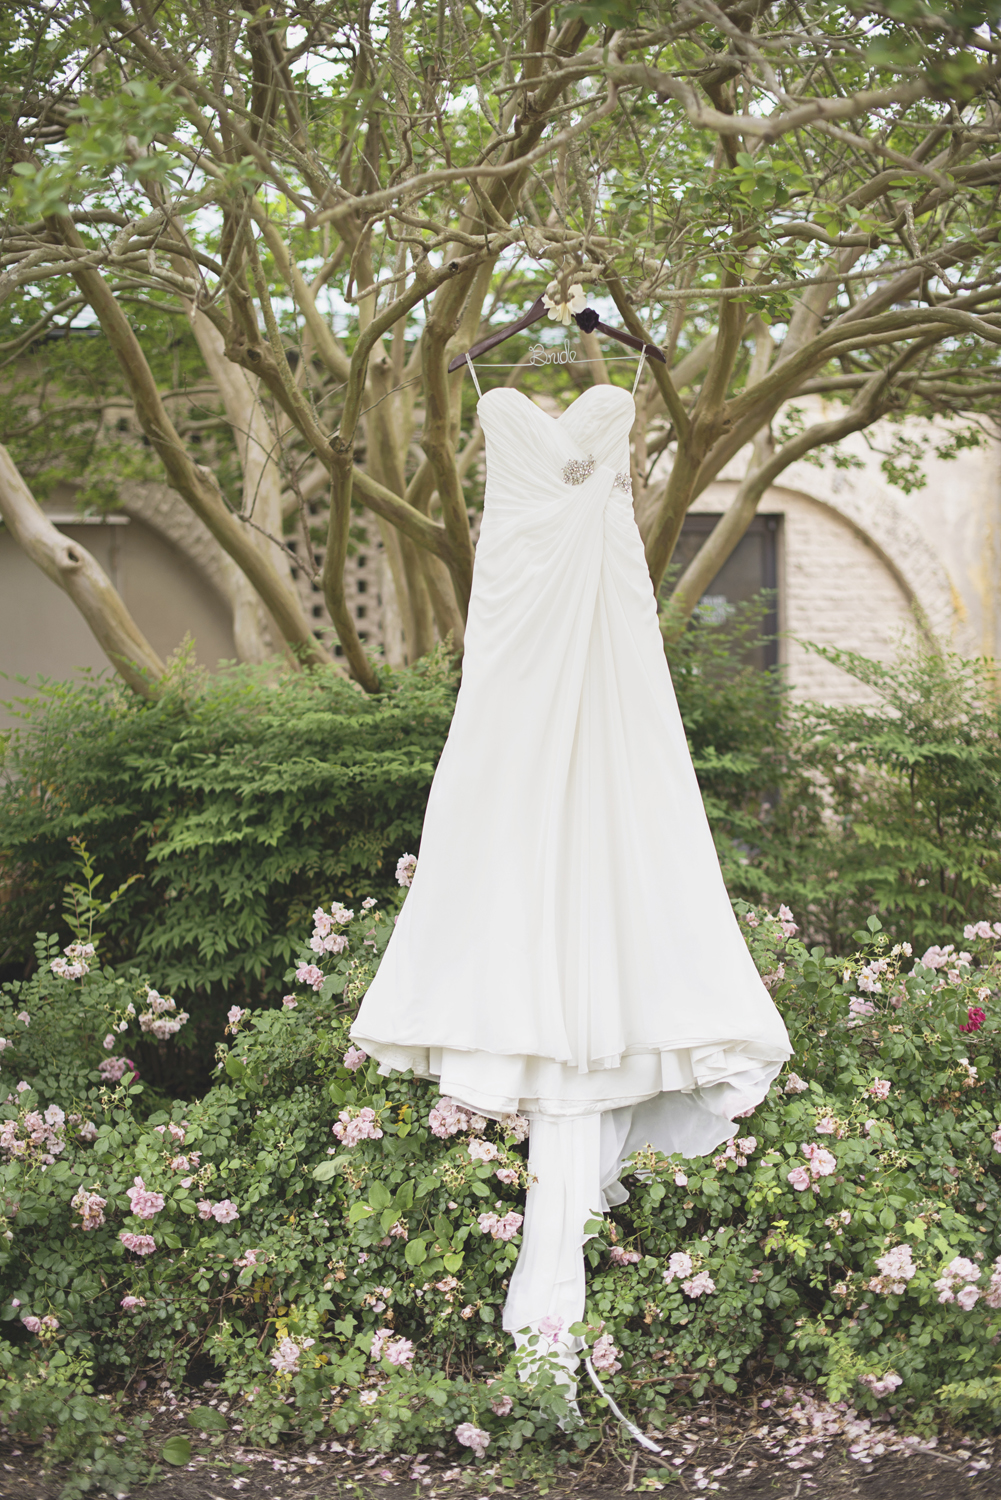 Mariners Museum Wedding | Newport News, Virginia | Wedding Dress